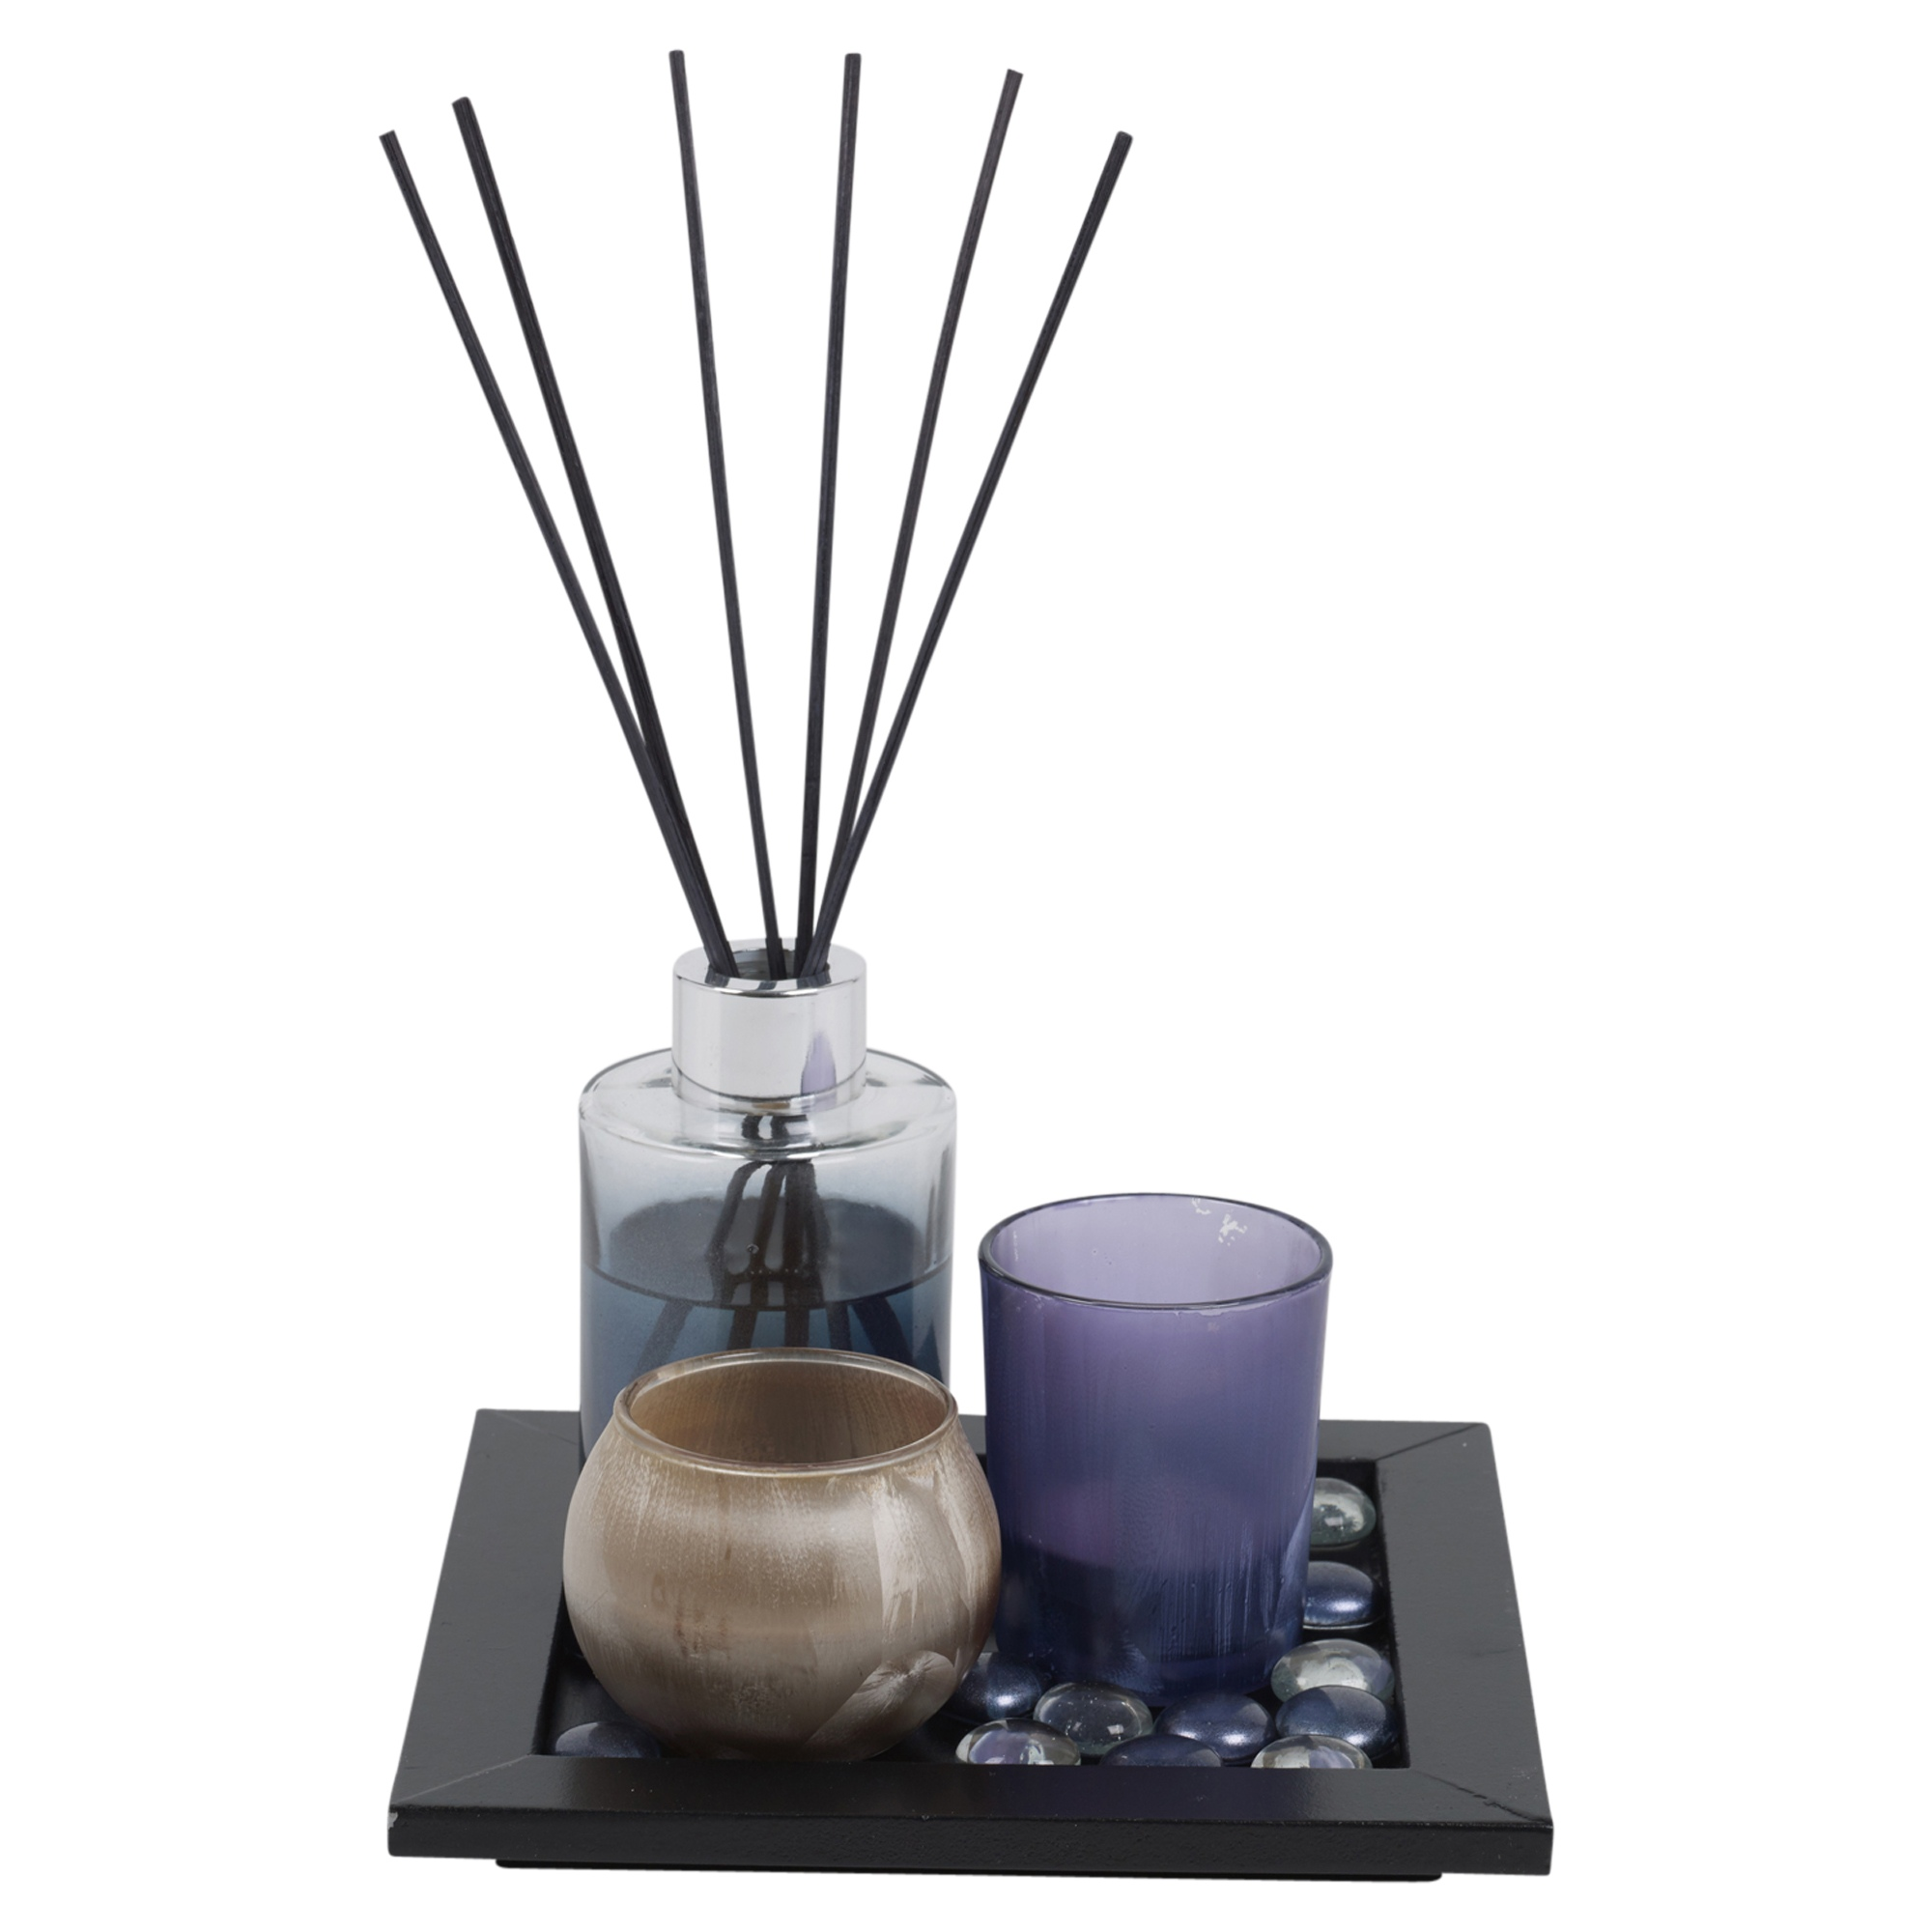 #5E4C3F Perfume Reed Diffuser & Scented Tealight Candle Tray Aroma  Most Effective 1175 Aromatherapy Diffuser Set pictures with 2000x2000 px on helpvideos.info - Air Conditioners, Air Coolers and more